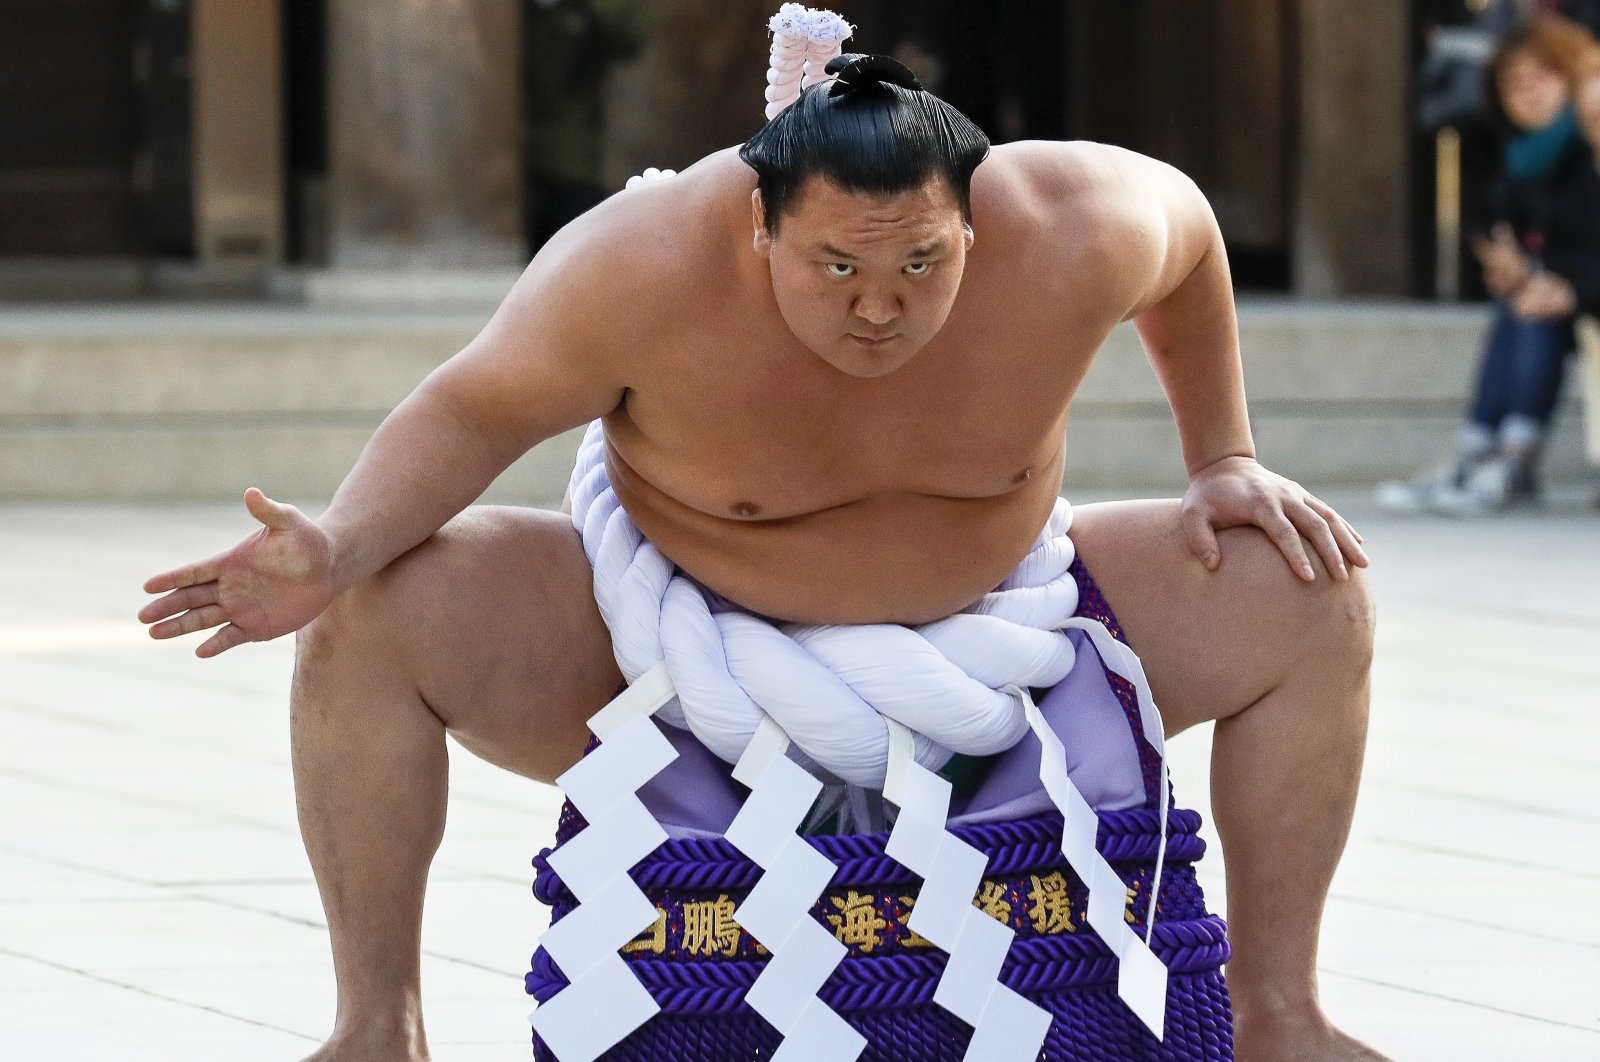 Mongolian-born grand sumo champion yokozuna Hakuho performs the New Year's ring-entering rite at the annual celebration for the New Year at Meiji Shrine in Tokyo, Japan, Jan. 9, 2018. (EPA Photo).